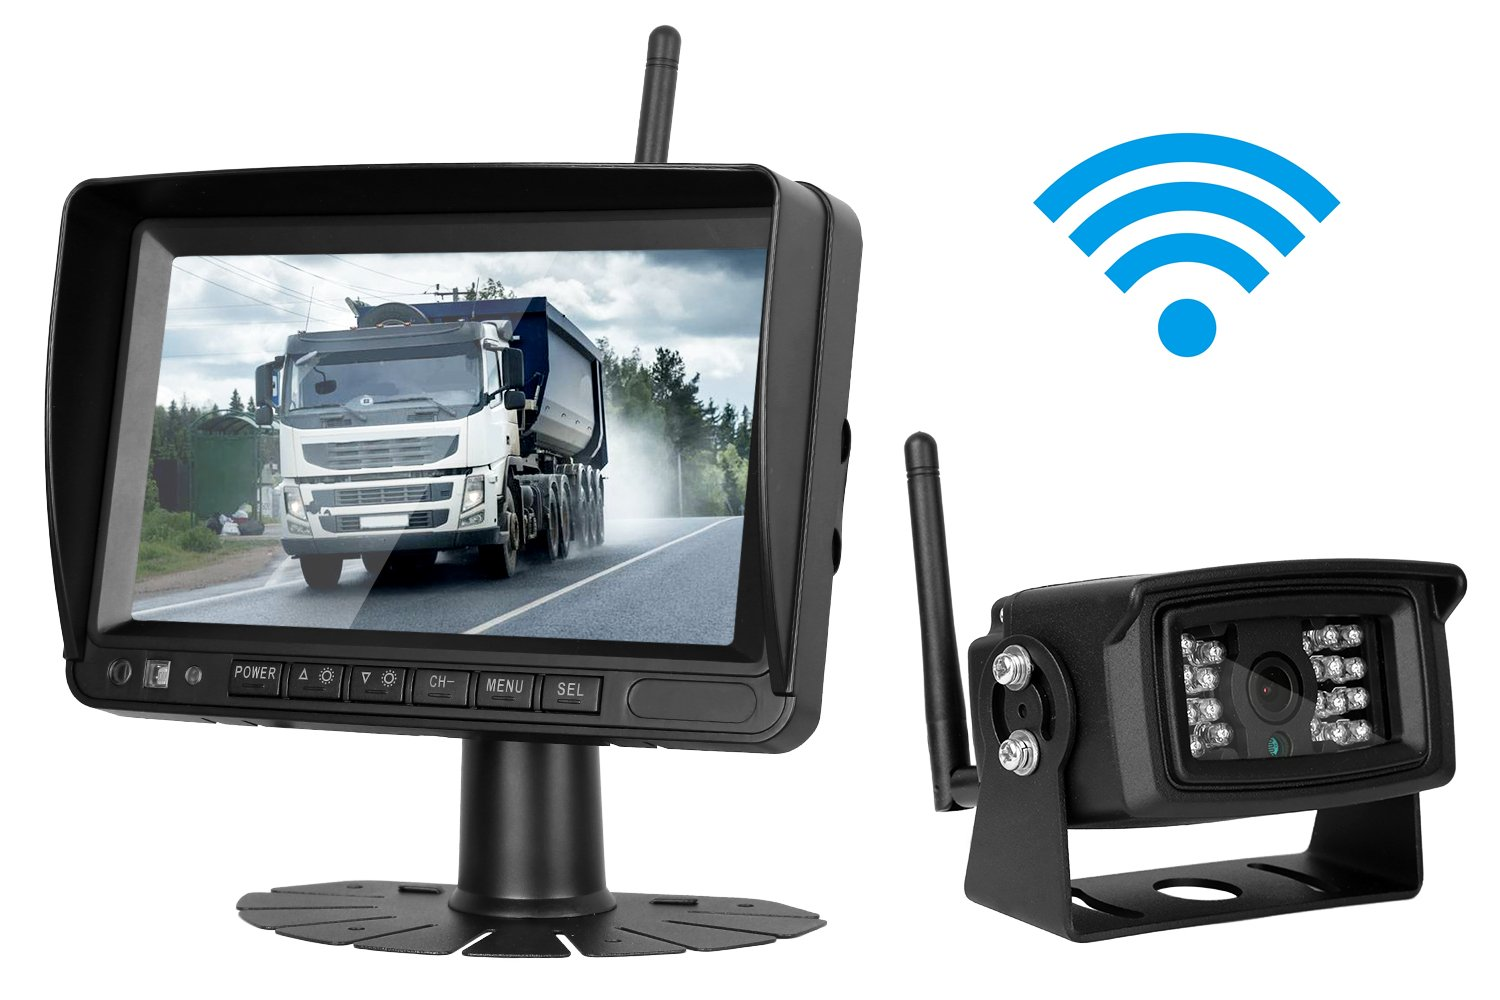 iStrong Digital Wireless Built-in Backup Camera and 7'' Monitor System Kit Working Over 300 ft Stable Signals Grid Lines Optional Waterproof Night Vision for Trailer/RV/Trucks/Motorhome/Boat